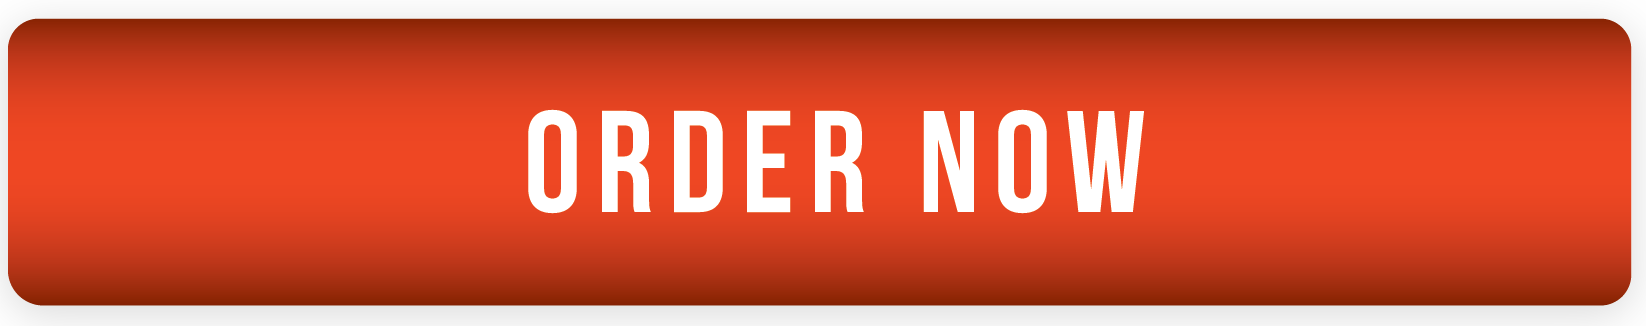 order-now-red-4x.png